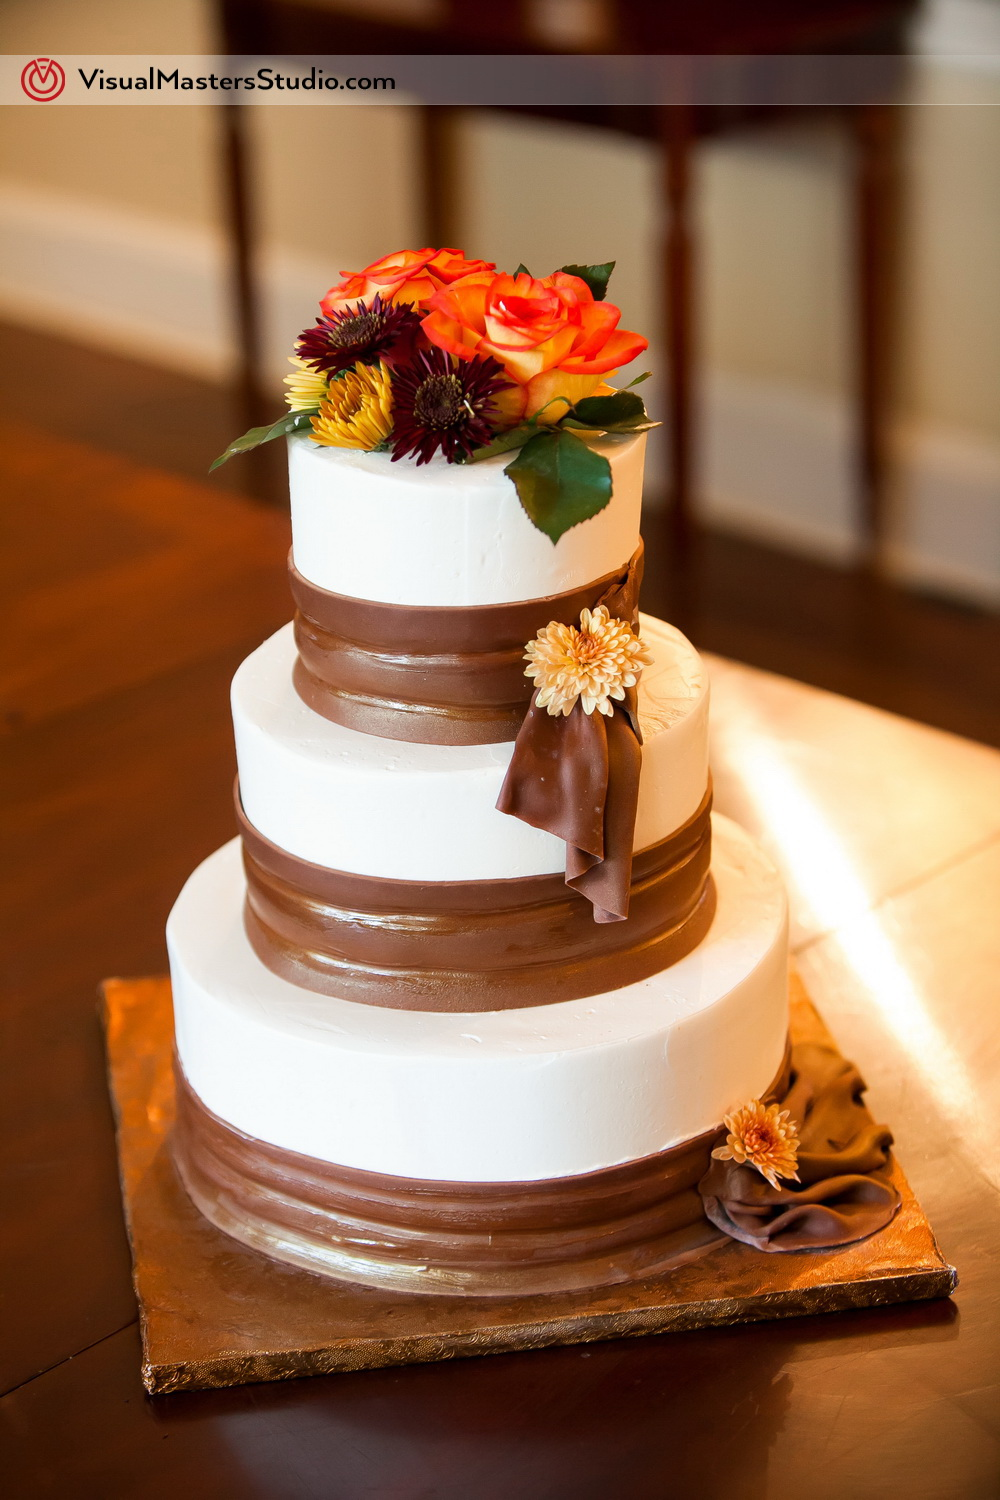 Wildflowers Wedding Cake by Visual Masters